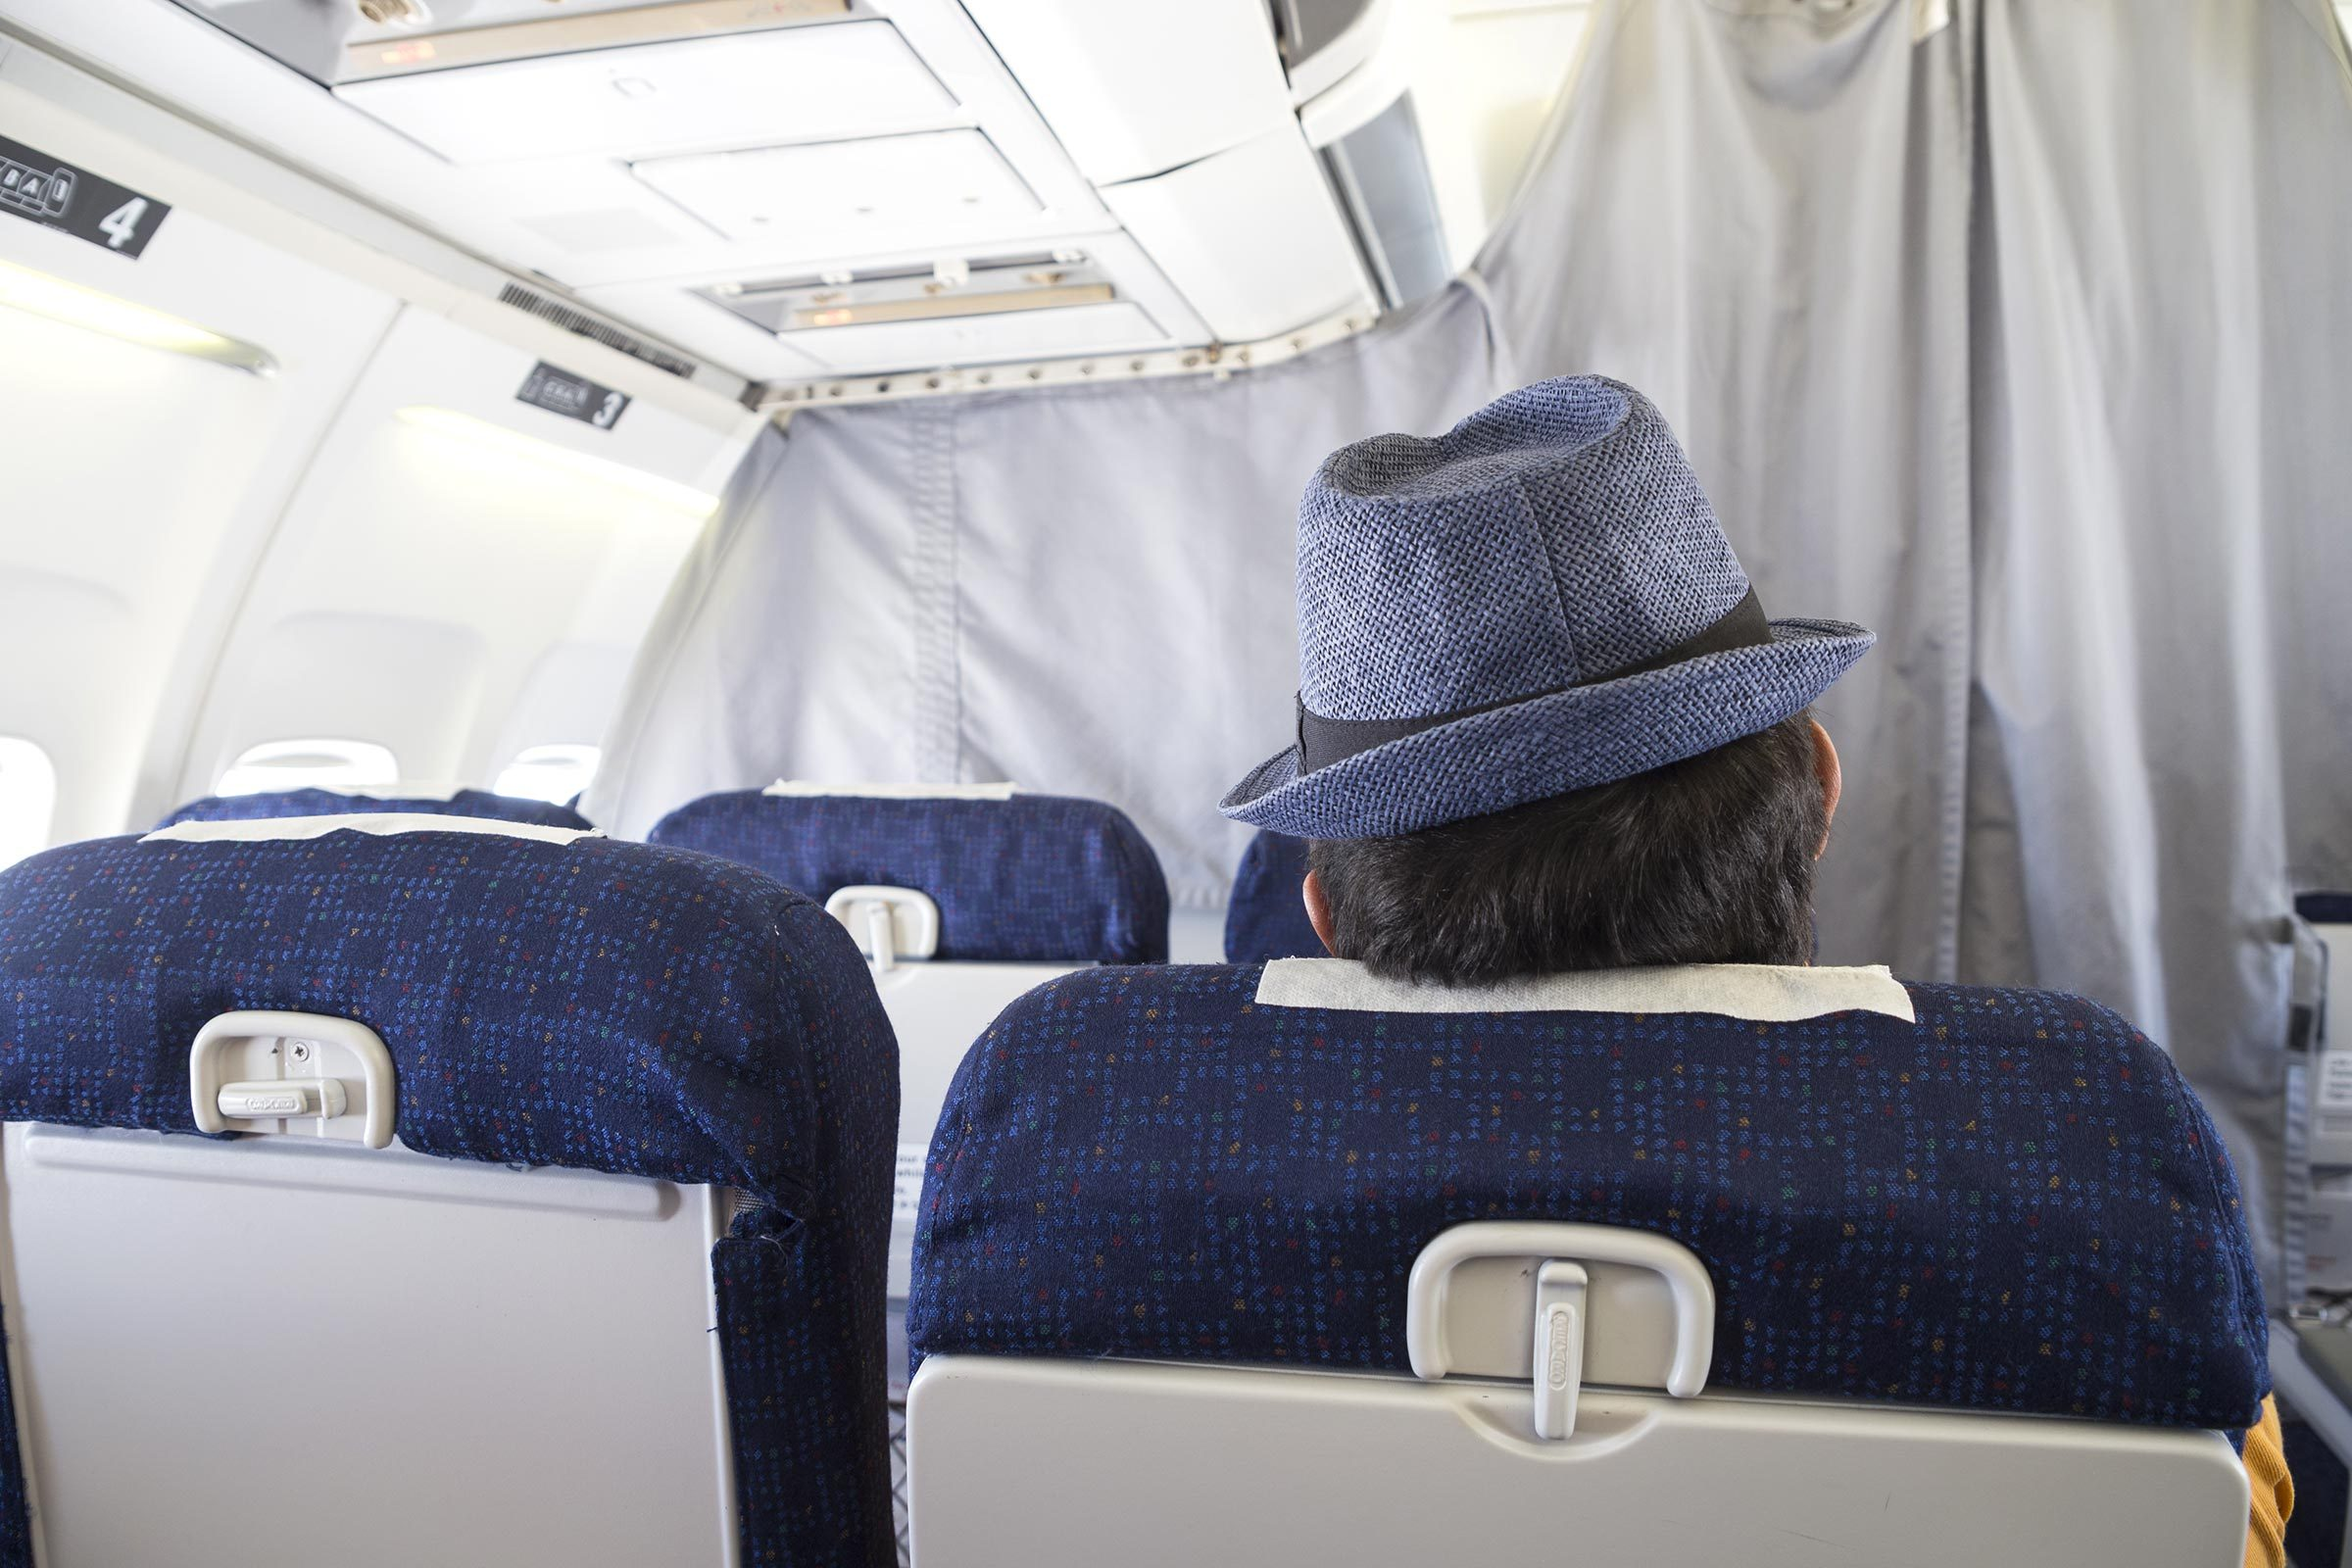 Aircraft cabin and passenger with hat